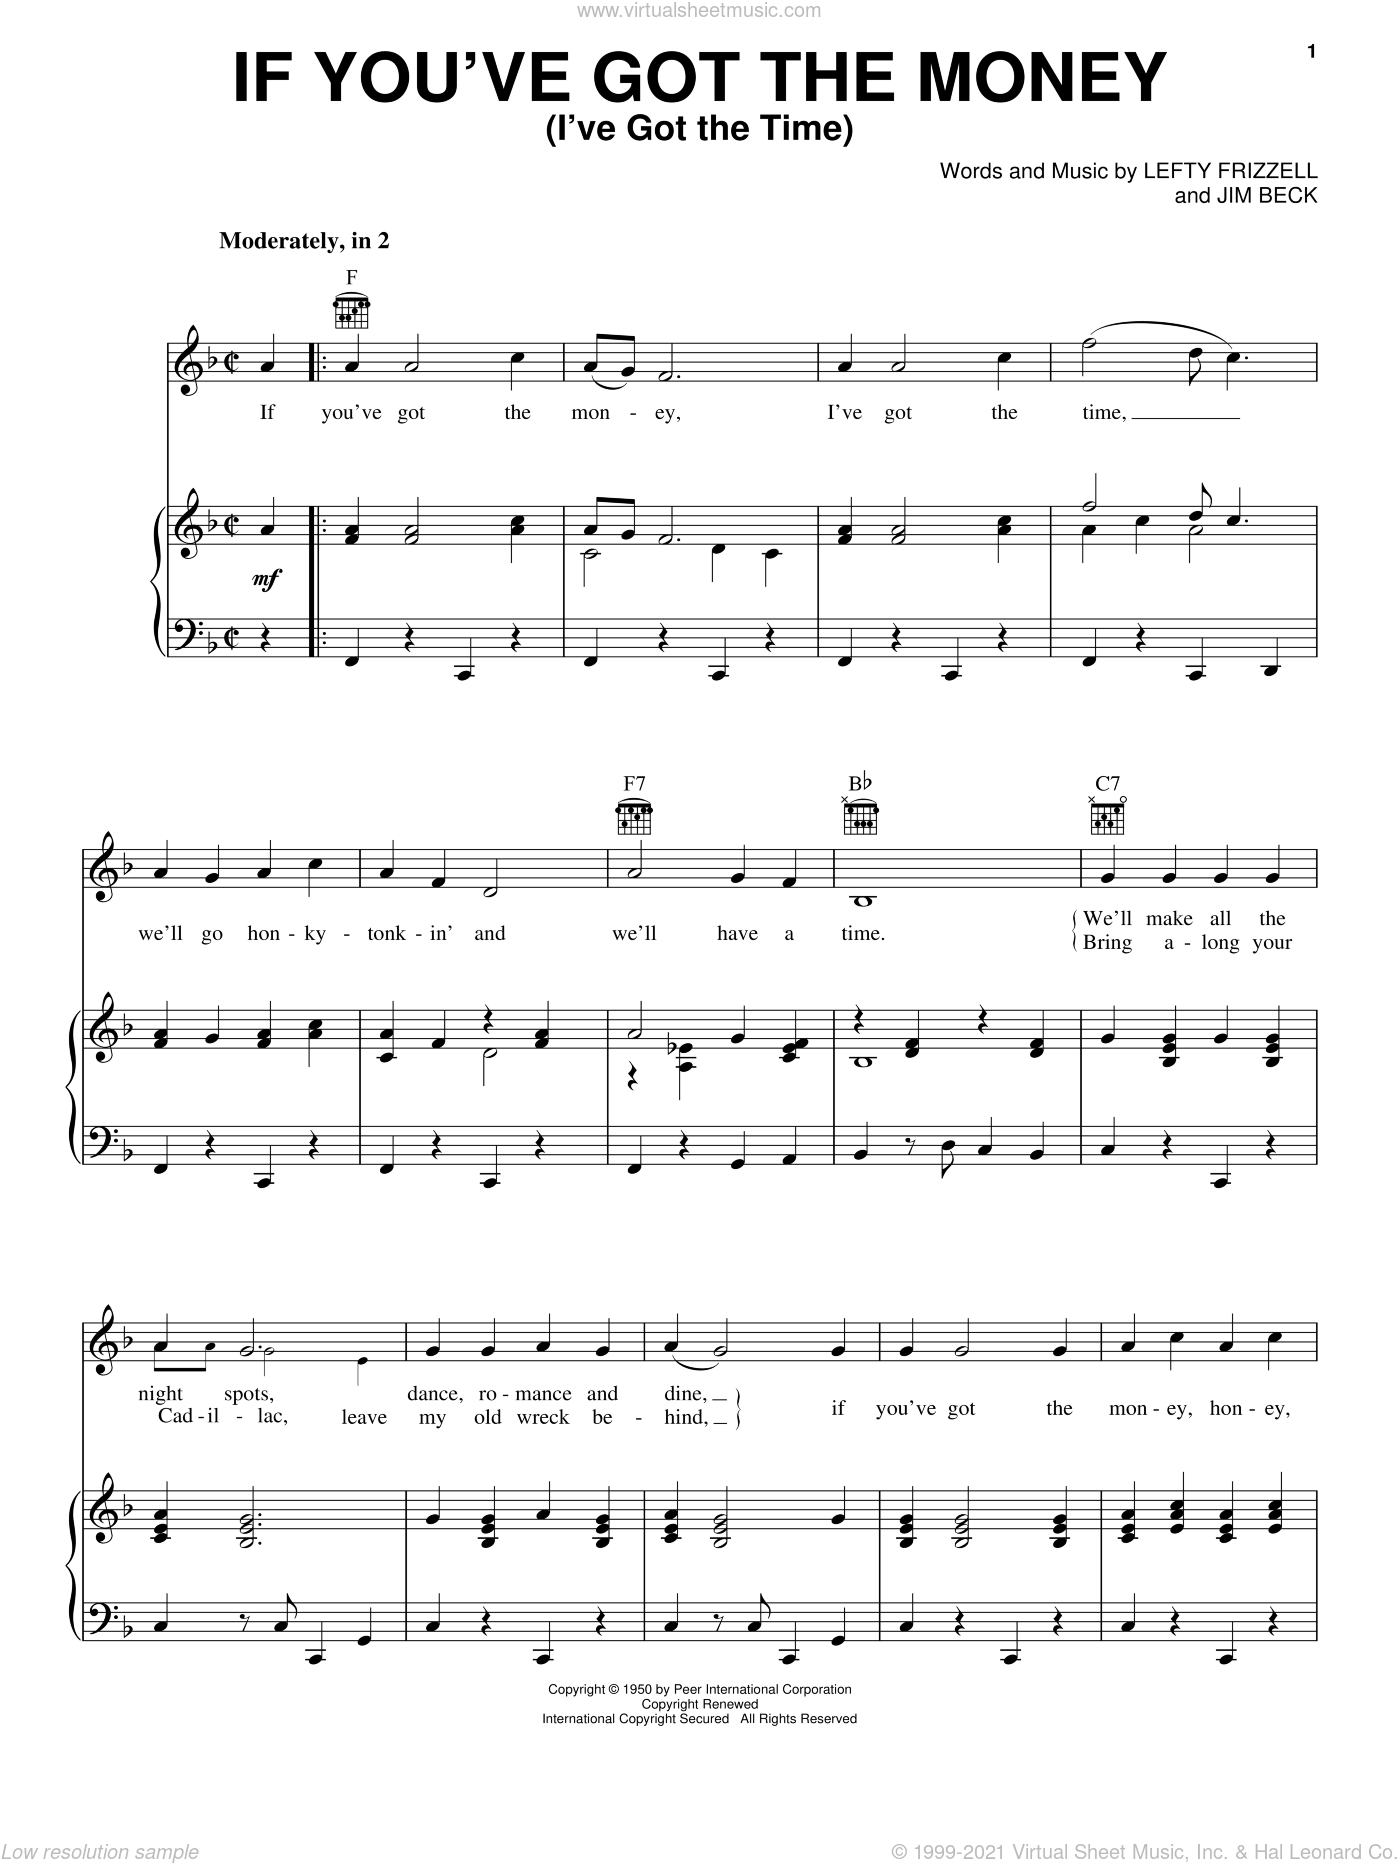 If You've Got The Money (I've Got The Time) sheet music for voice, piano or guitar by Jim Beck, Willie Nelson and Lefty Frizzell. Score Image Preview.